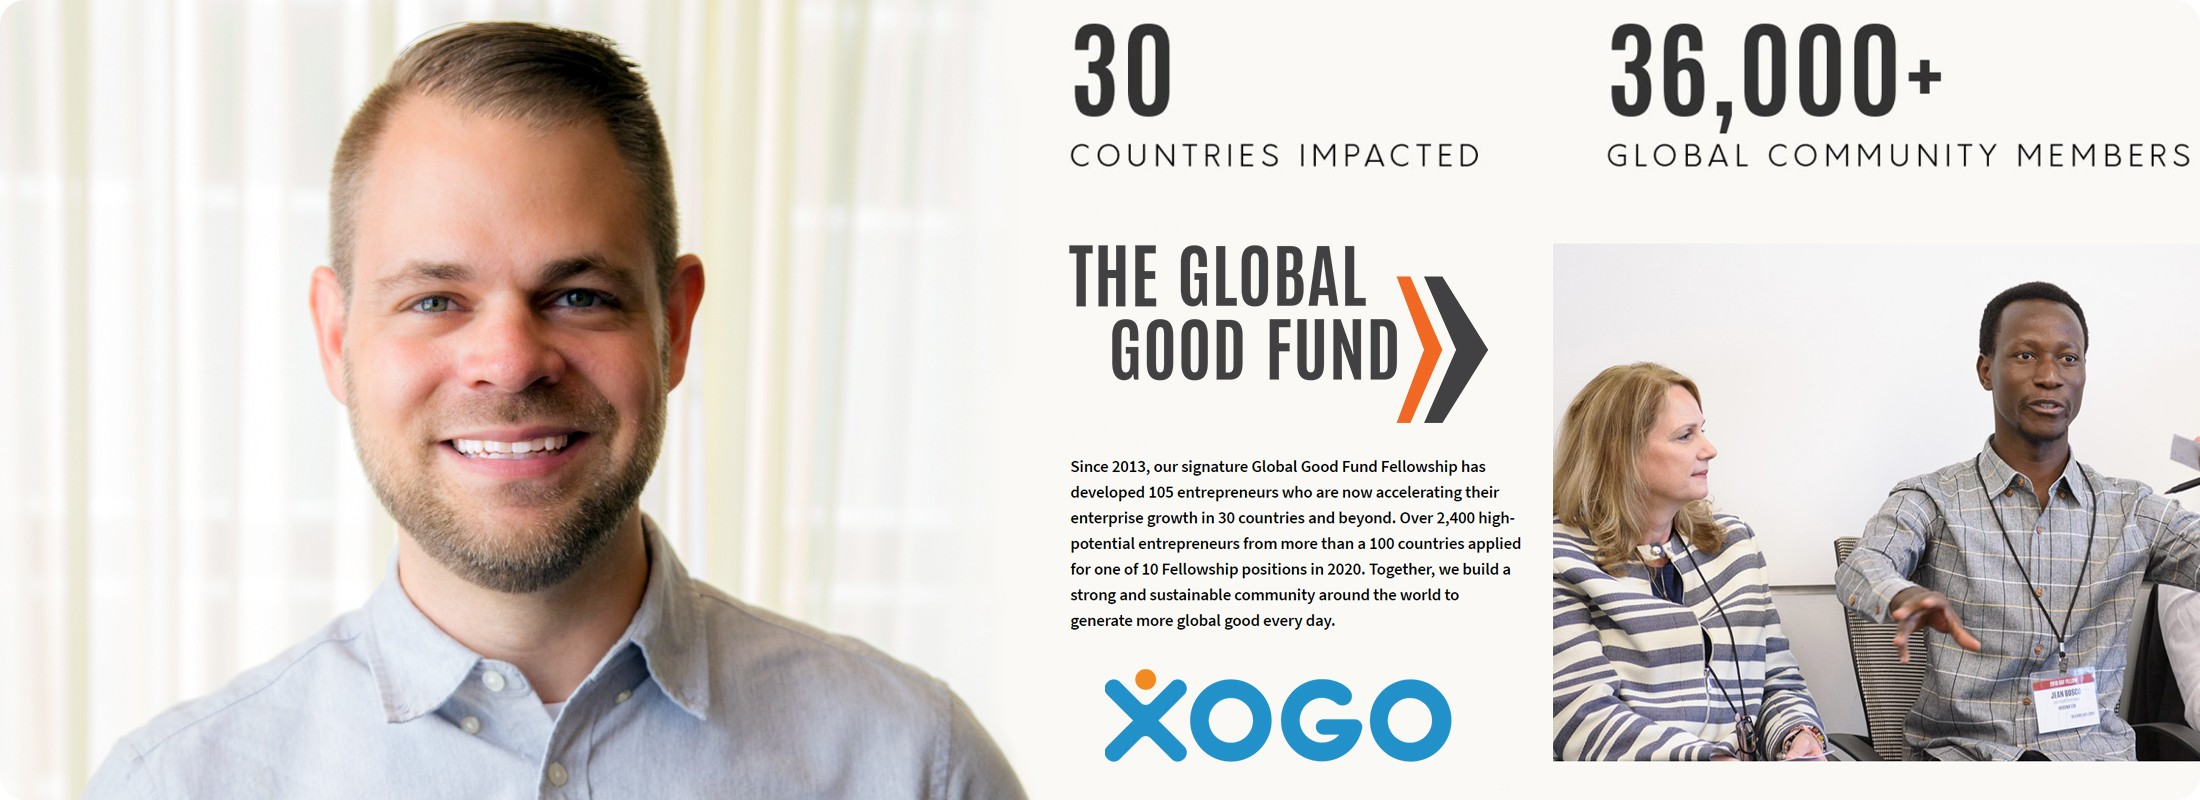 Xogo is a Part of the Global Good Fund